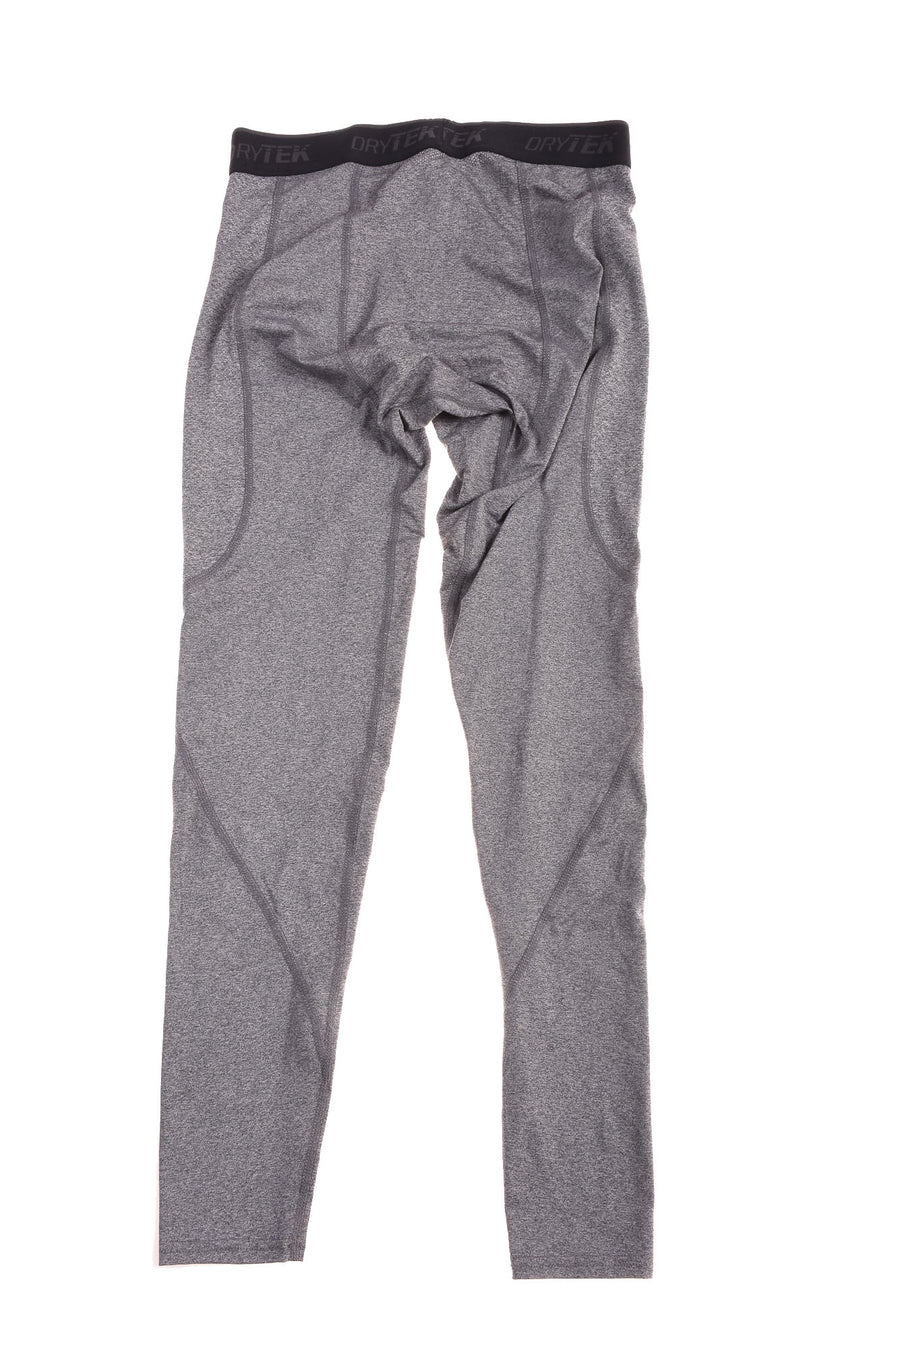 NEW Tek Gear Men's Pants Small Gray